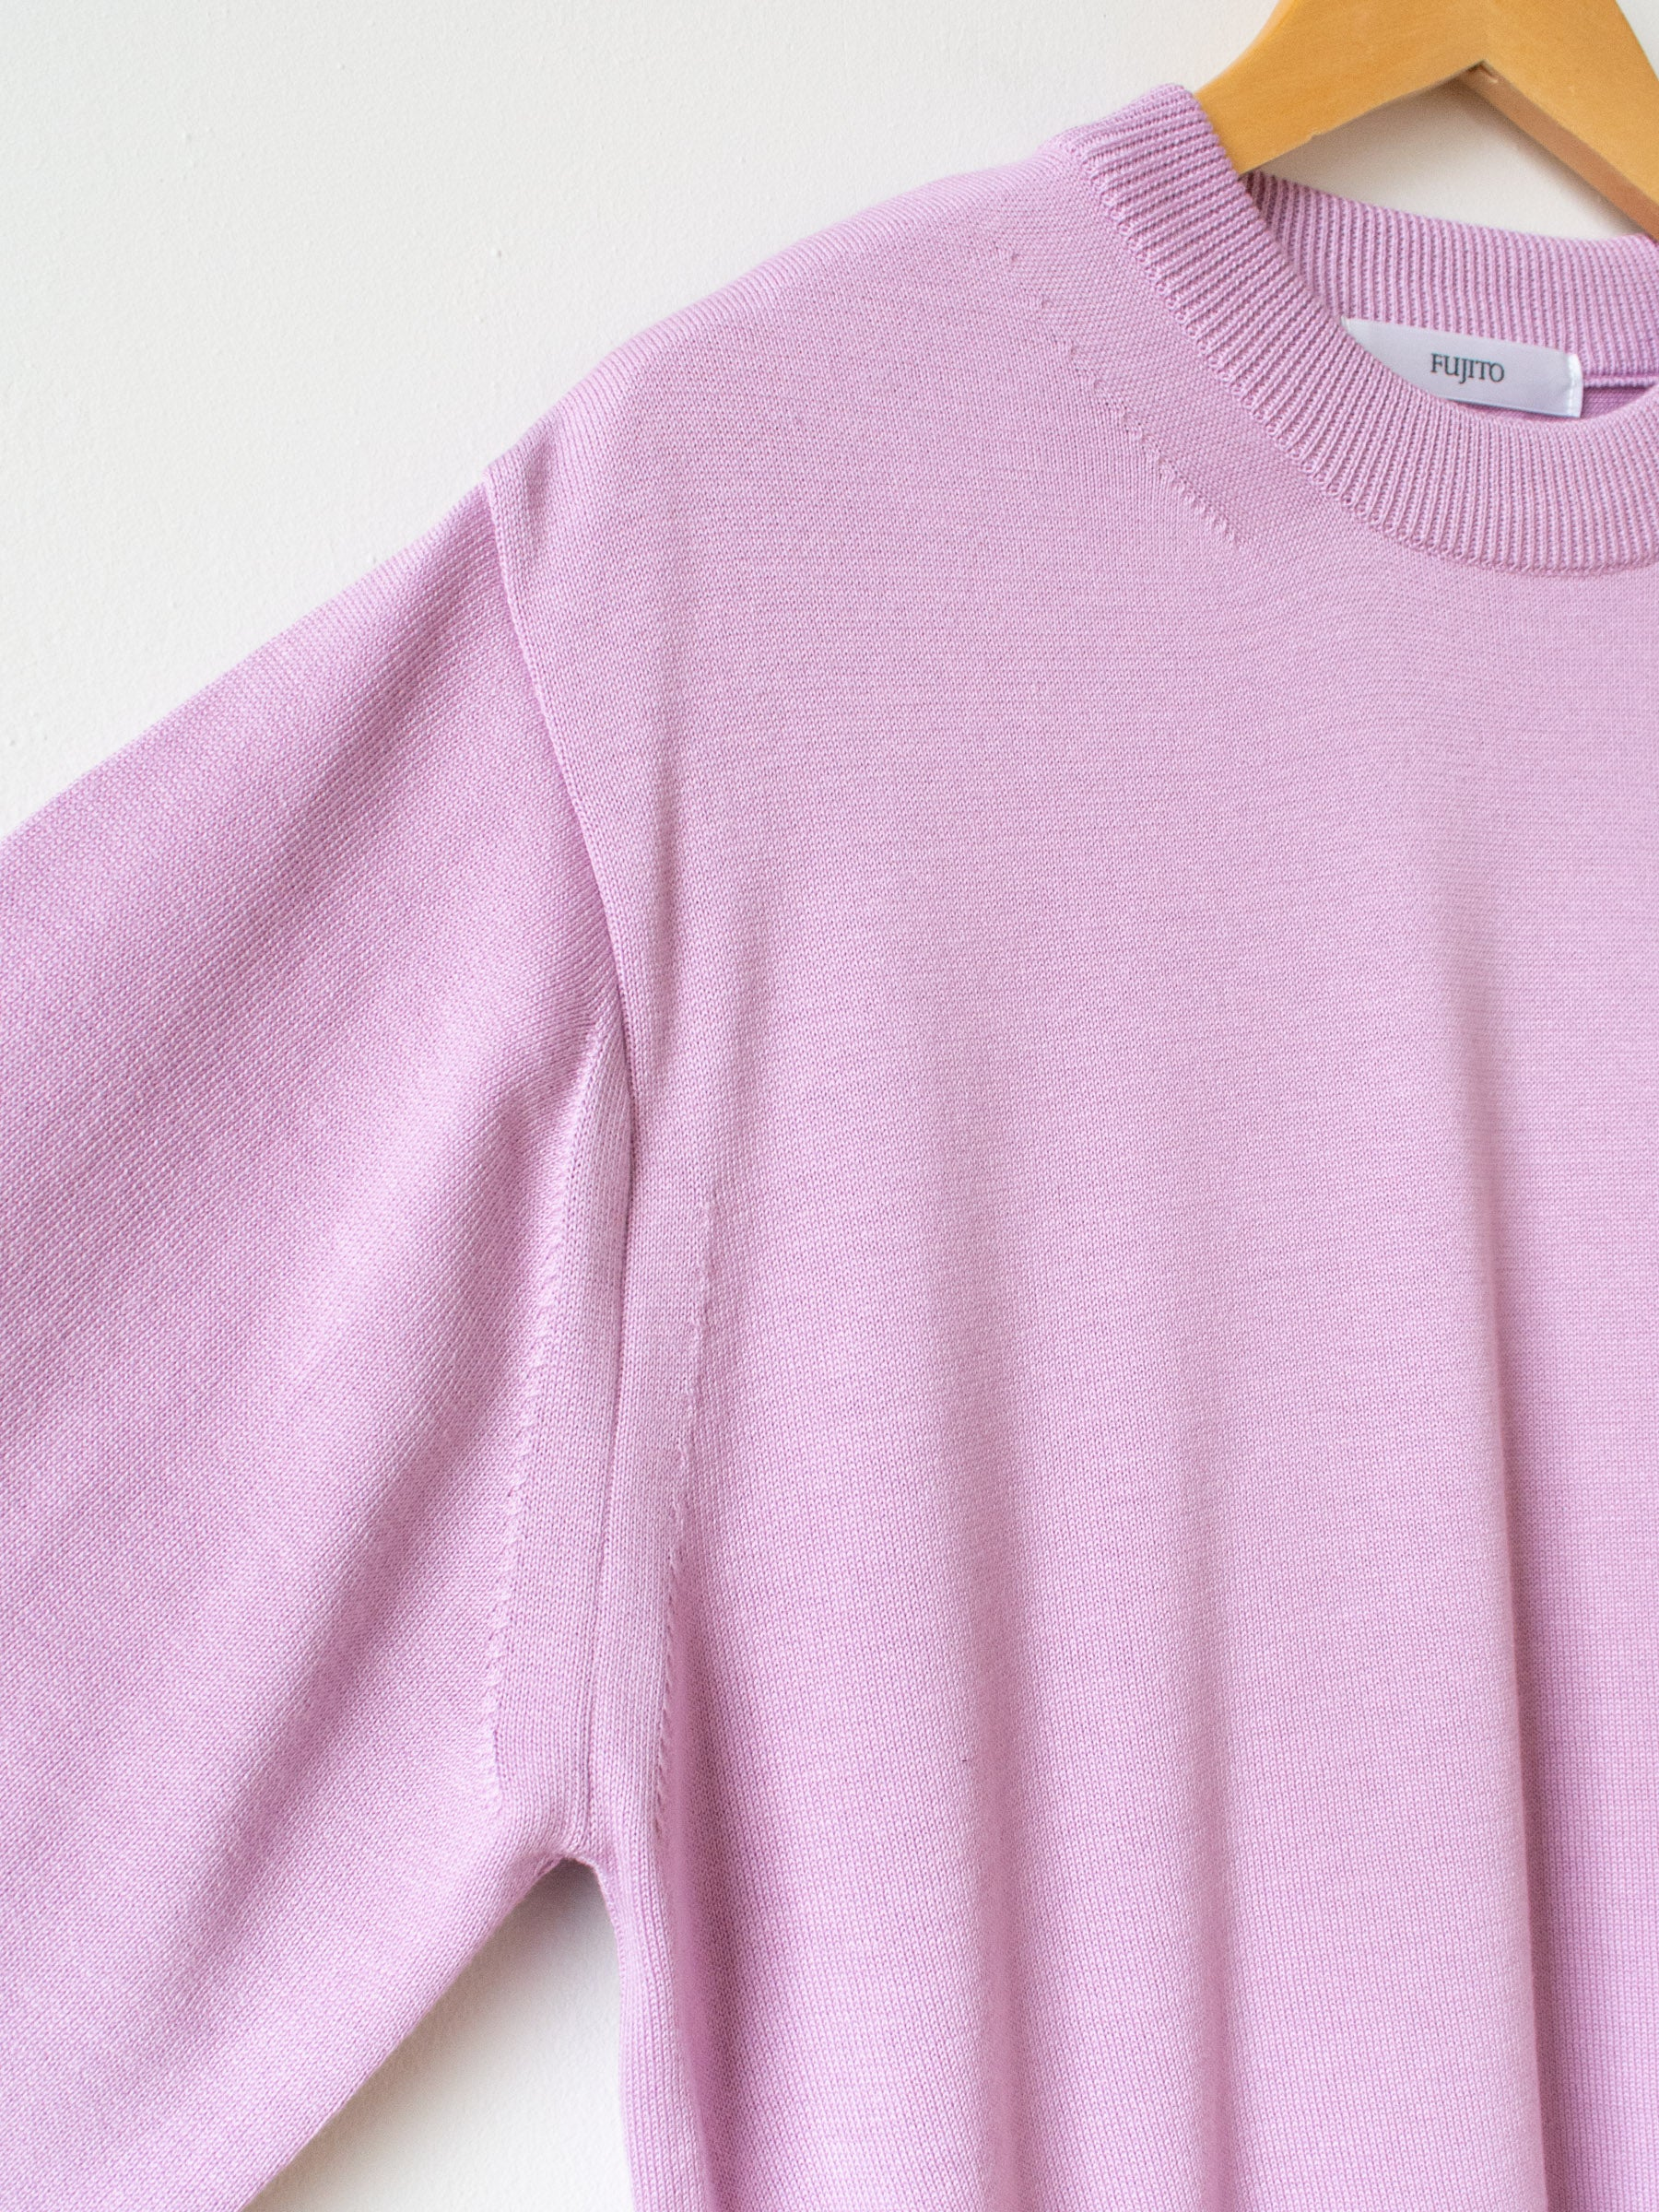 Co Silk C/N Knit Sweater - Lavender